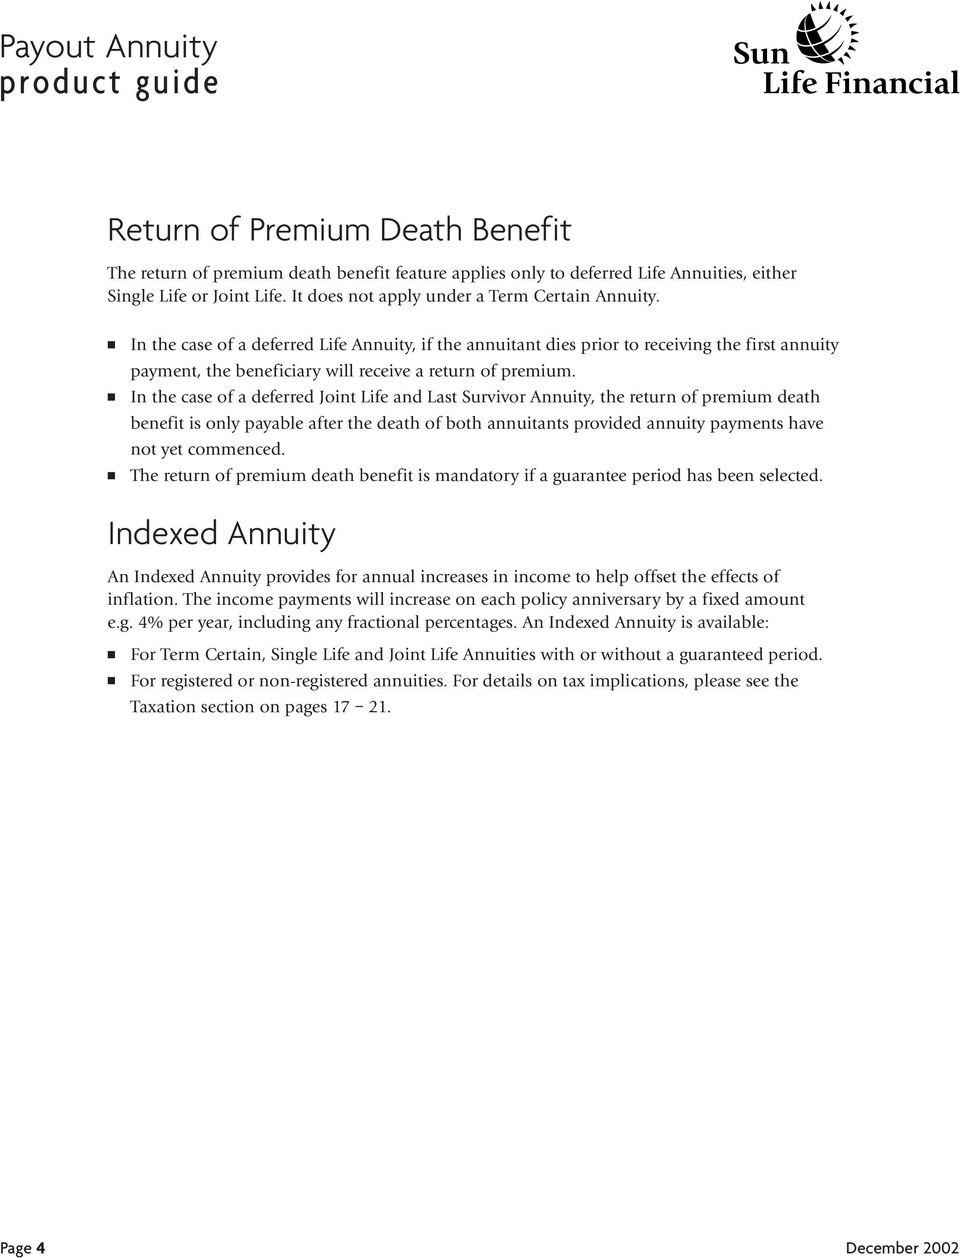 In the case of a deferred Joint Life and Last Survivor Annuity, the return of premium death benefit is only payable after the death of both annuitants provided annuity payments have not yet commenced.